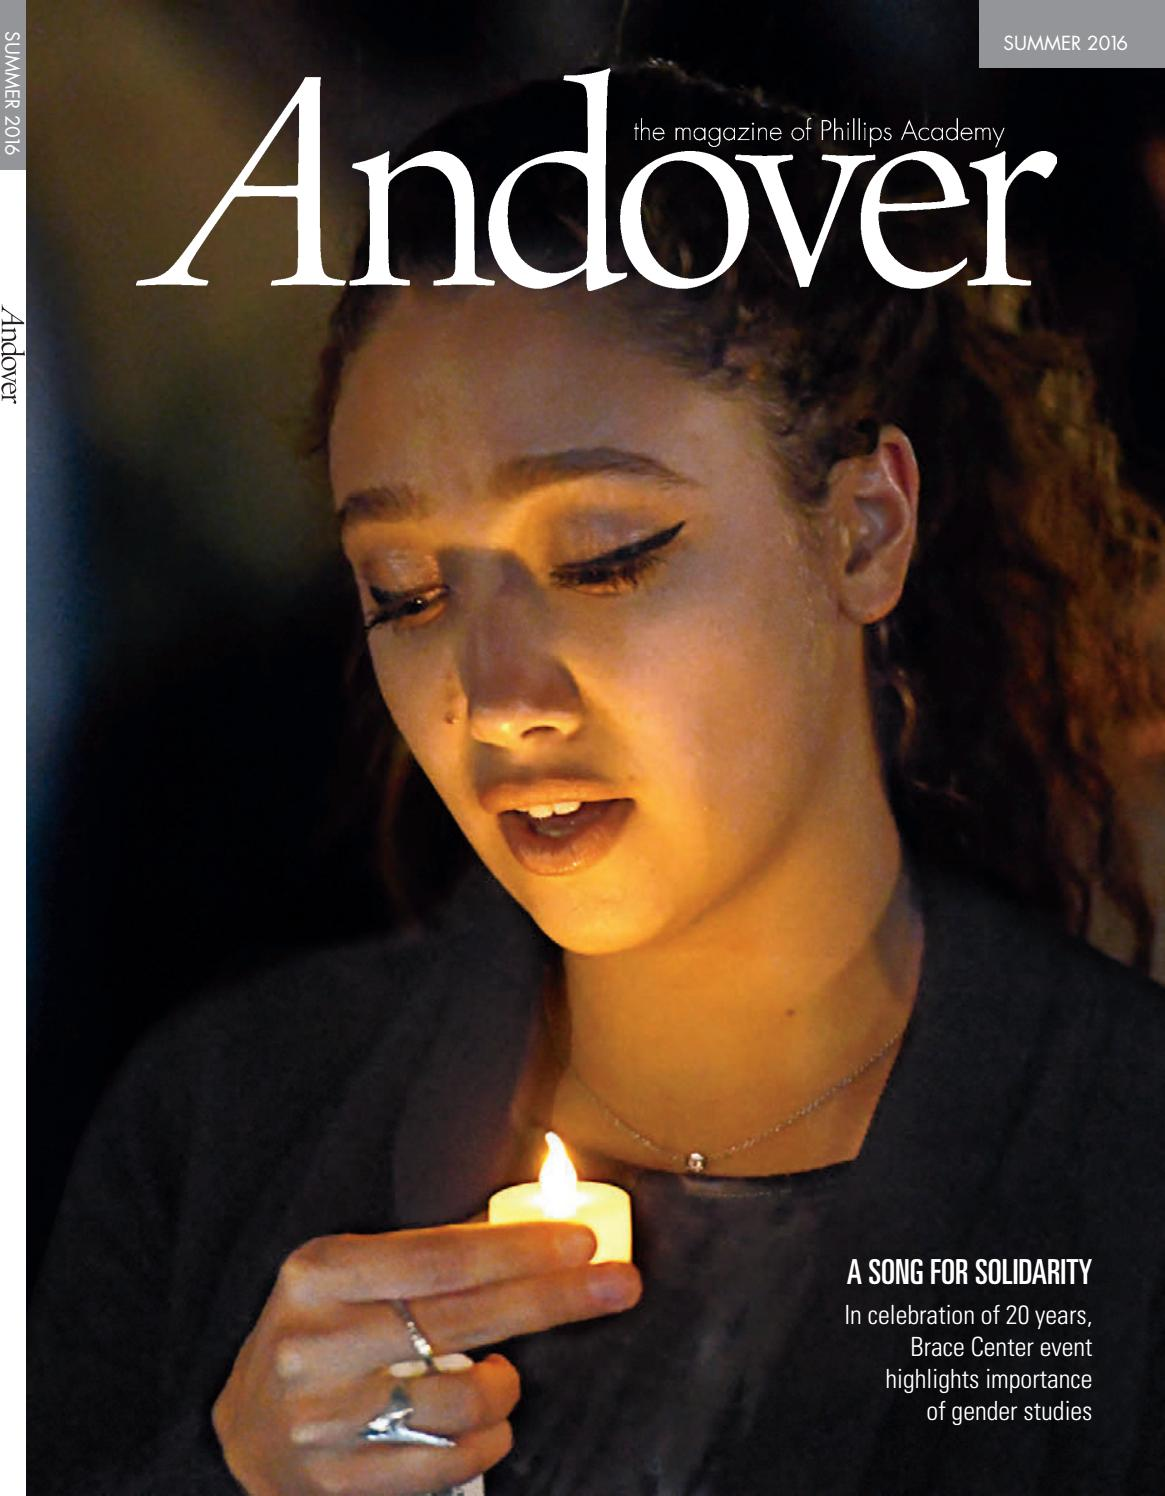 9568ce6a2c0 Andover magazine — Summer 2016 by Phillips Academy - issuu